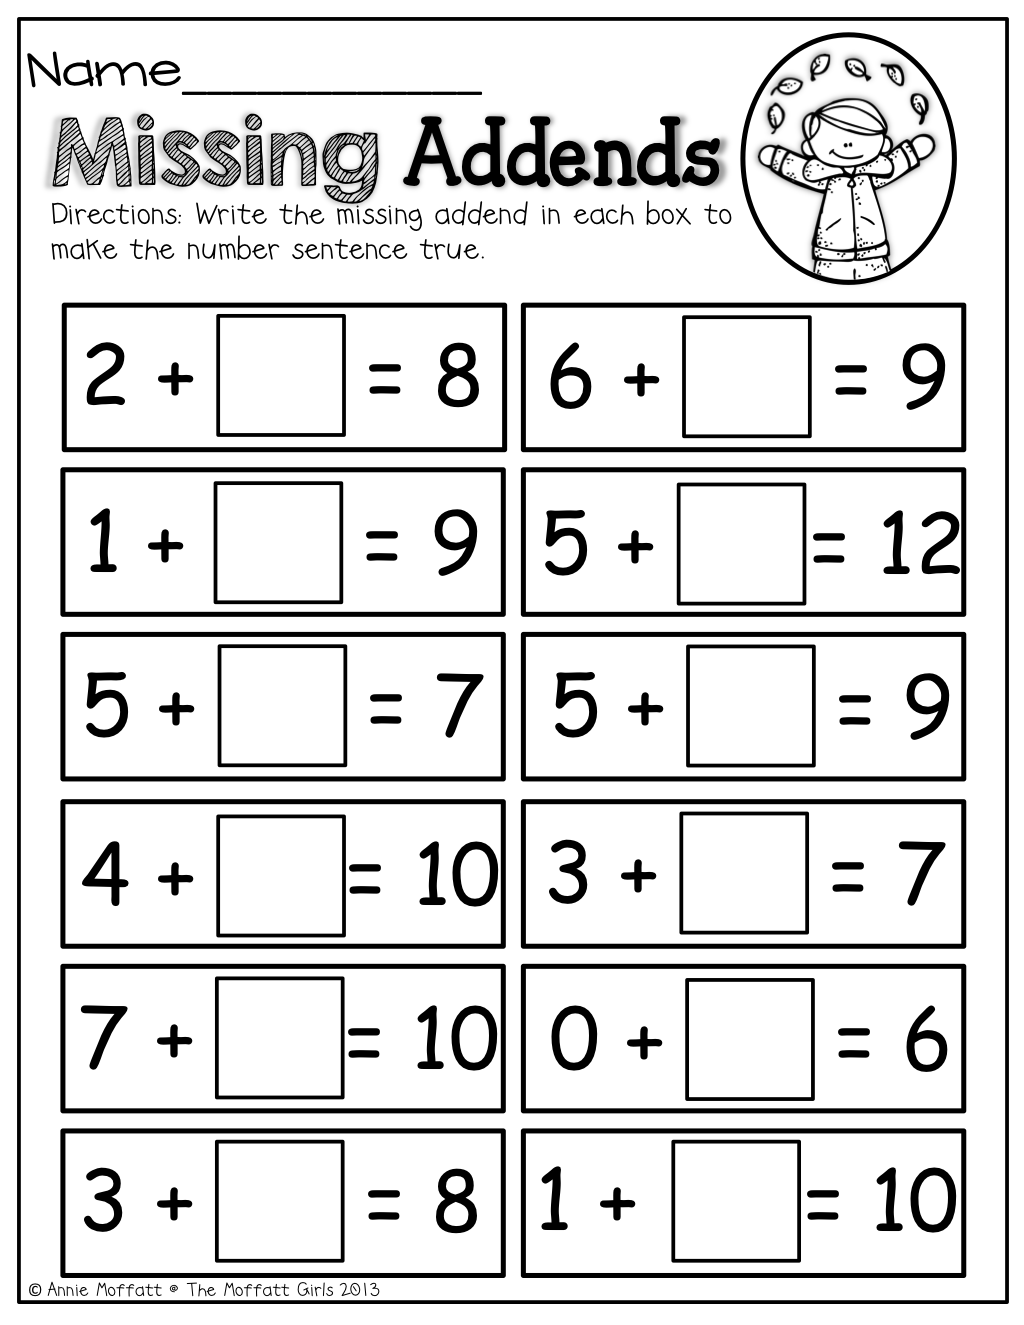 Missing Addends! | Math | Pinterest | Math, Math worksheets and ...